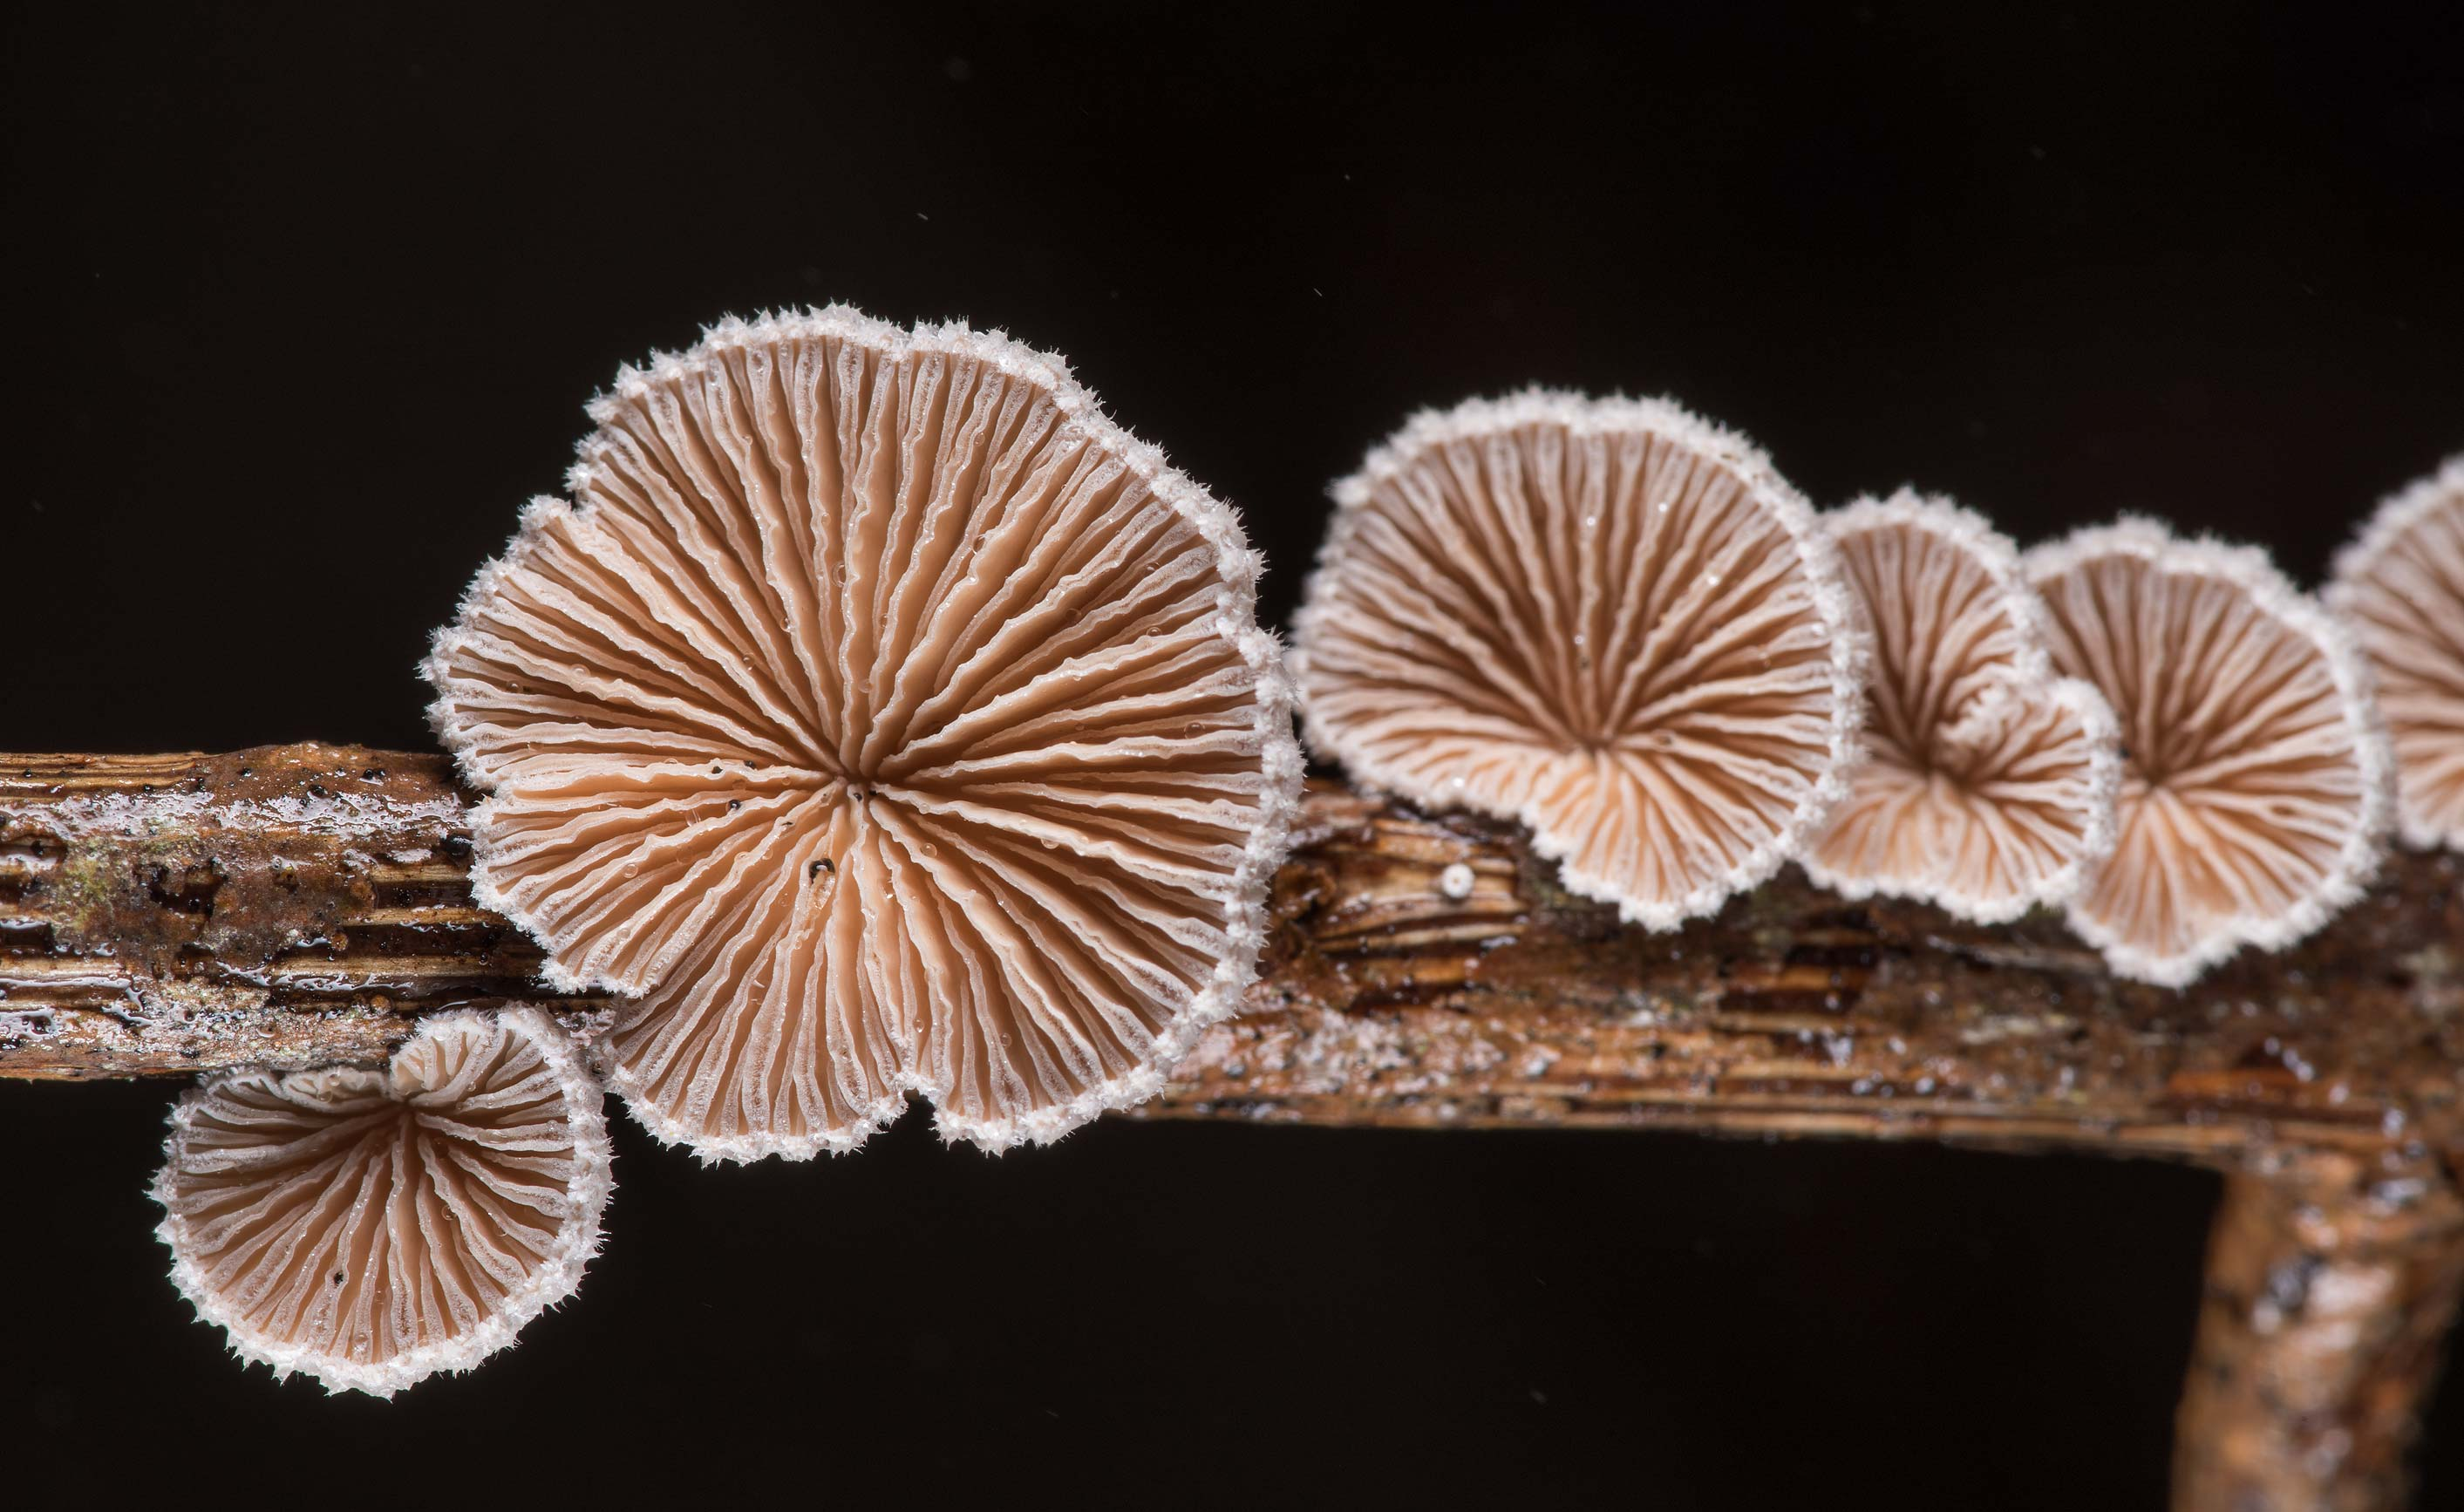 Underside of splitgill mushrooms (Schizophyllum...on Park Hudson Trail. Bryan, Texas